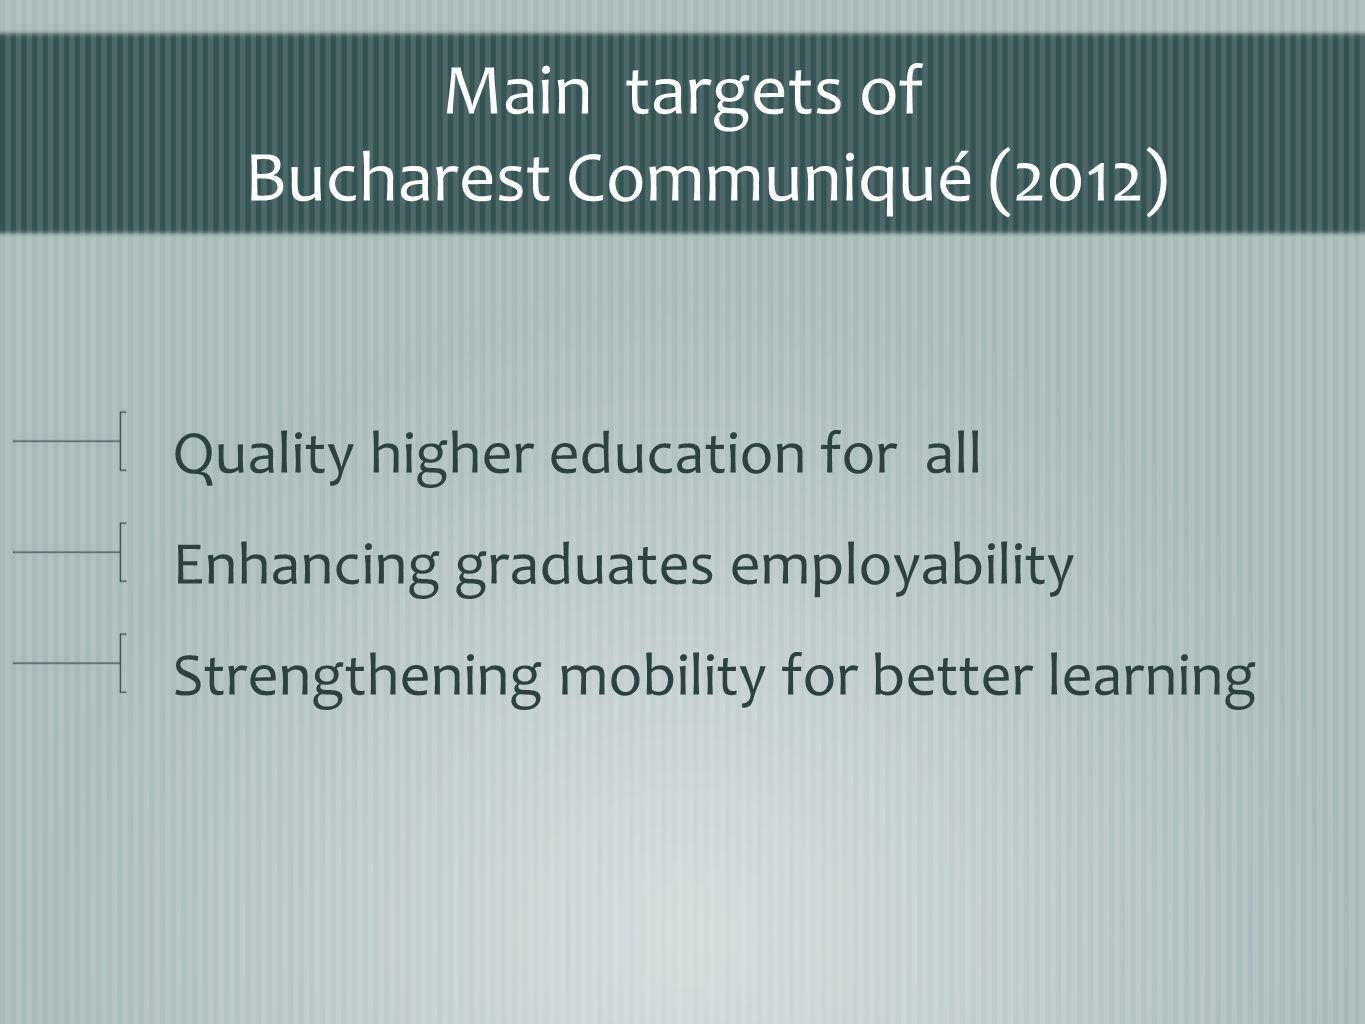 Main targets of Bucharest Communiqué (2012) Quality higher education for all Enhancing graduates employability Strengthening mobility for better learning